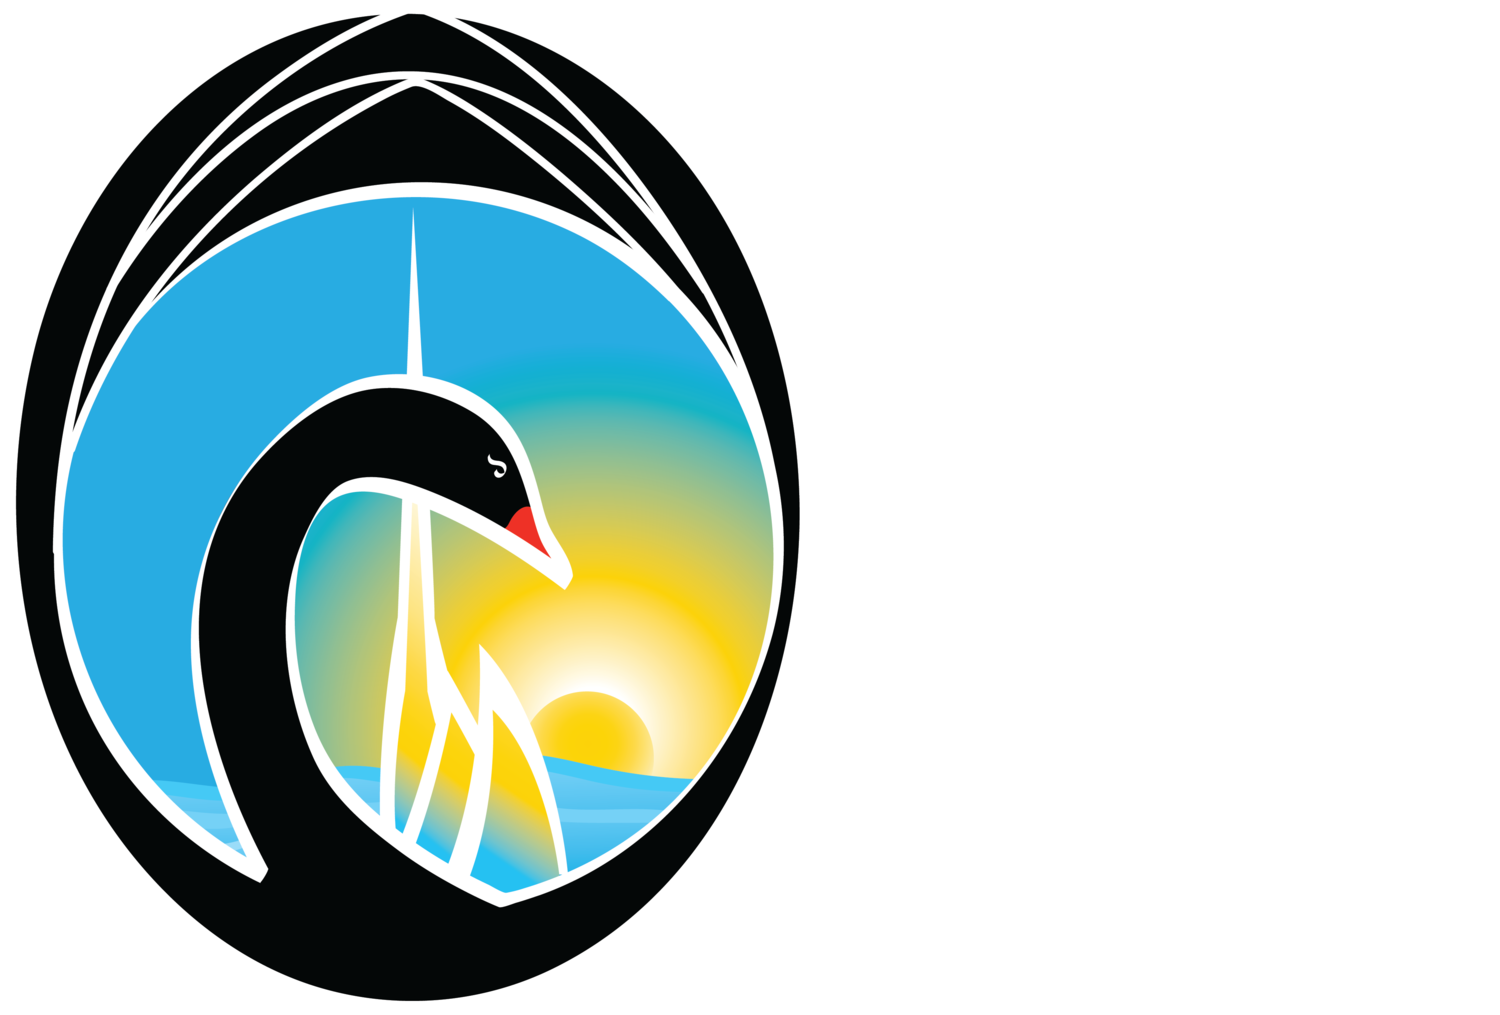 Swan Festival of Lights 2017